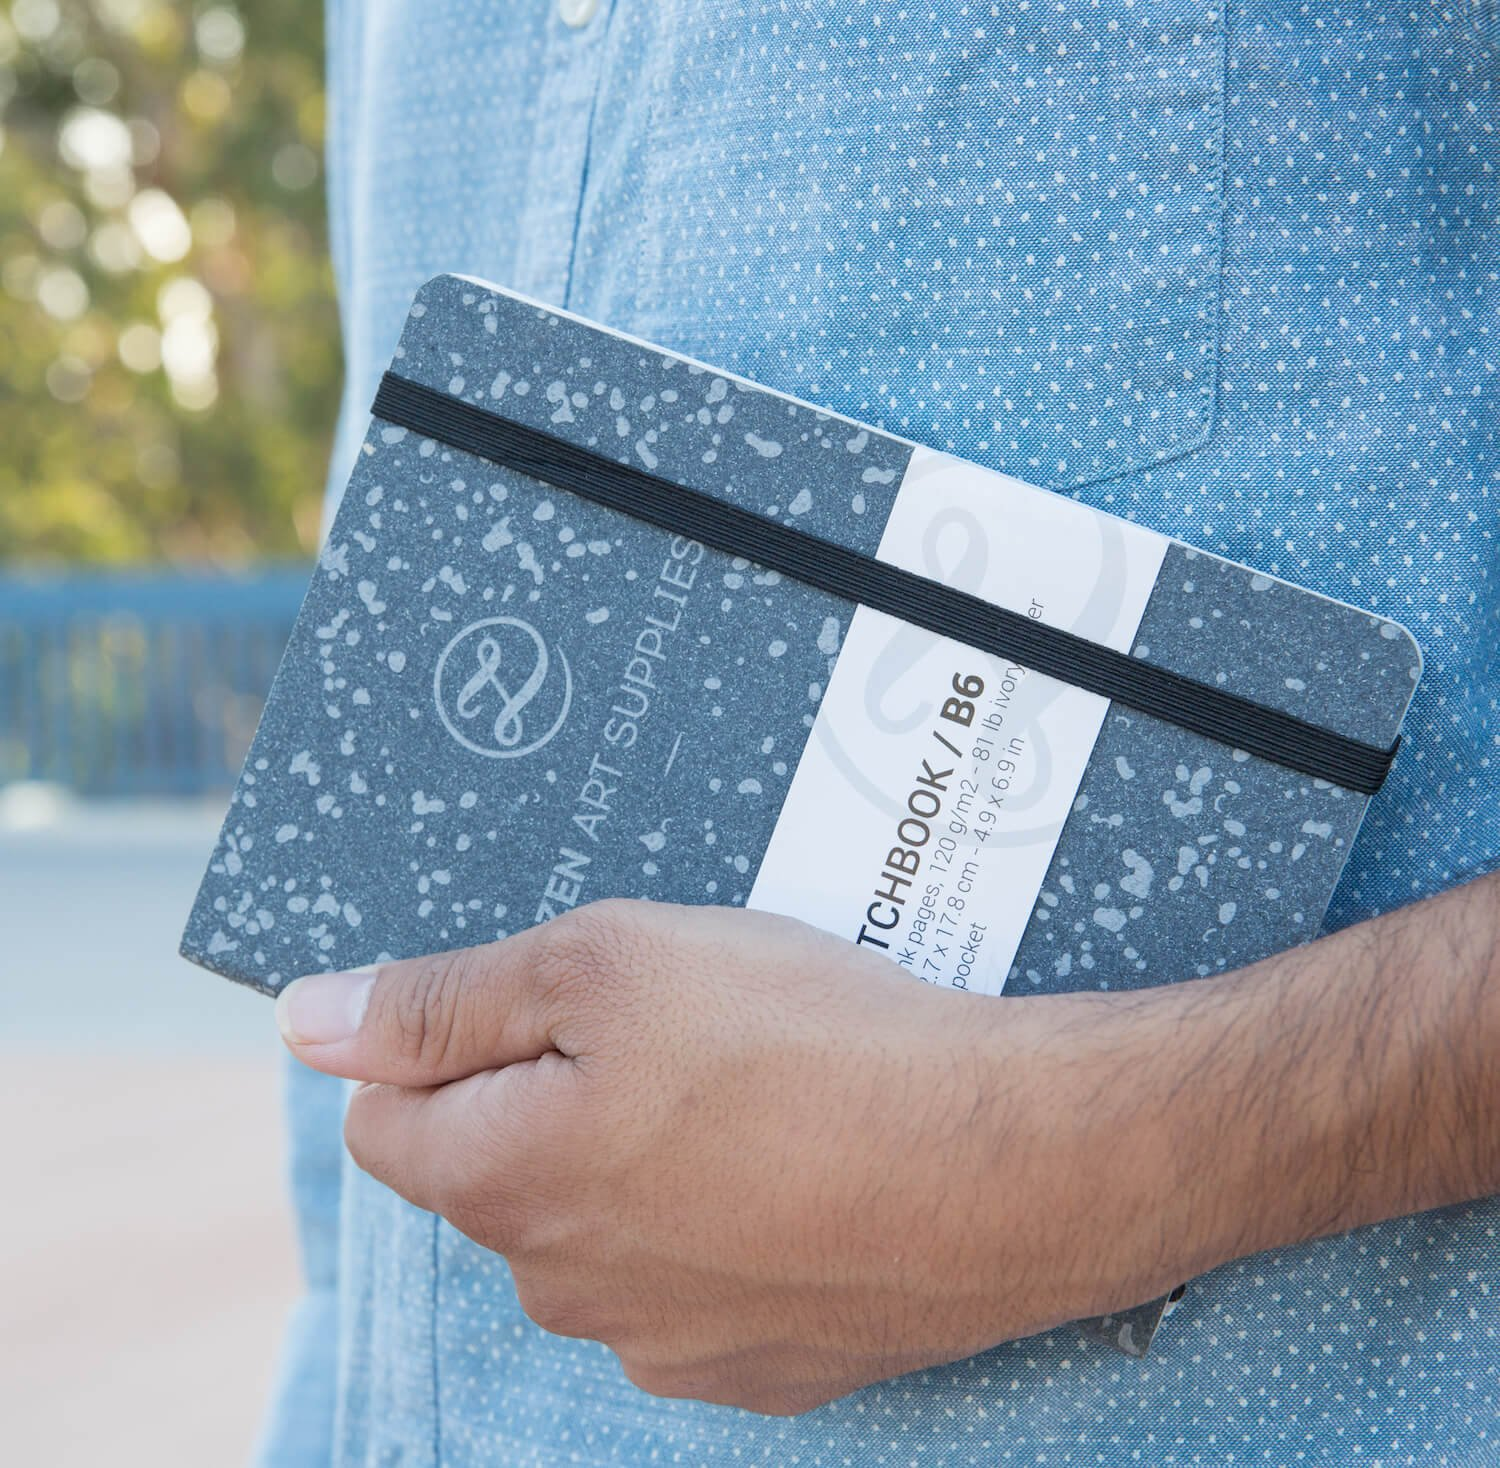 """Inner Pocket 2 Bookmarks /& Elastic Band 160 Blank Pages of Smooth 120 GSM Acid-Free Ivory Paper ZenArts B6 5/""""x7/"""" Durable Engineered Leather Cover Sketchbook Journal"""